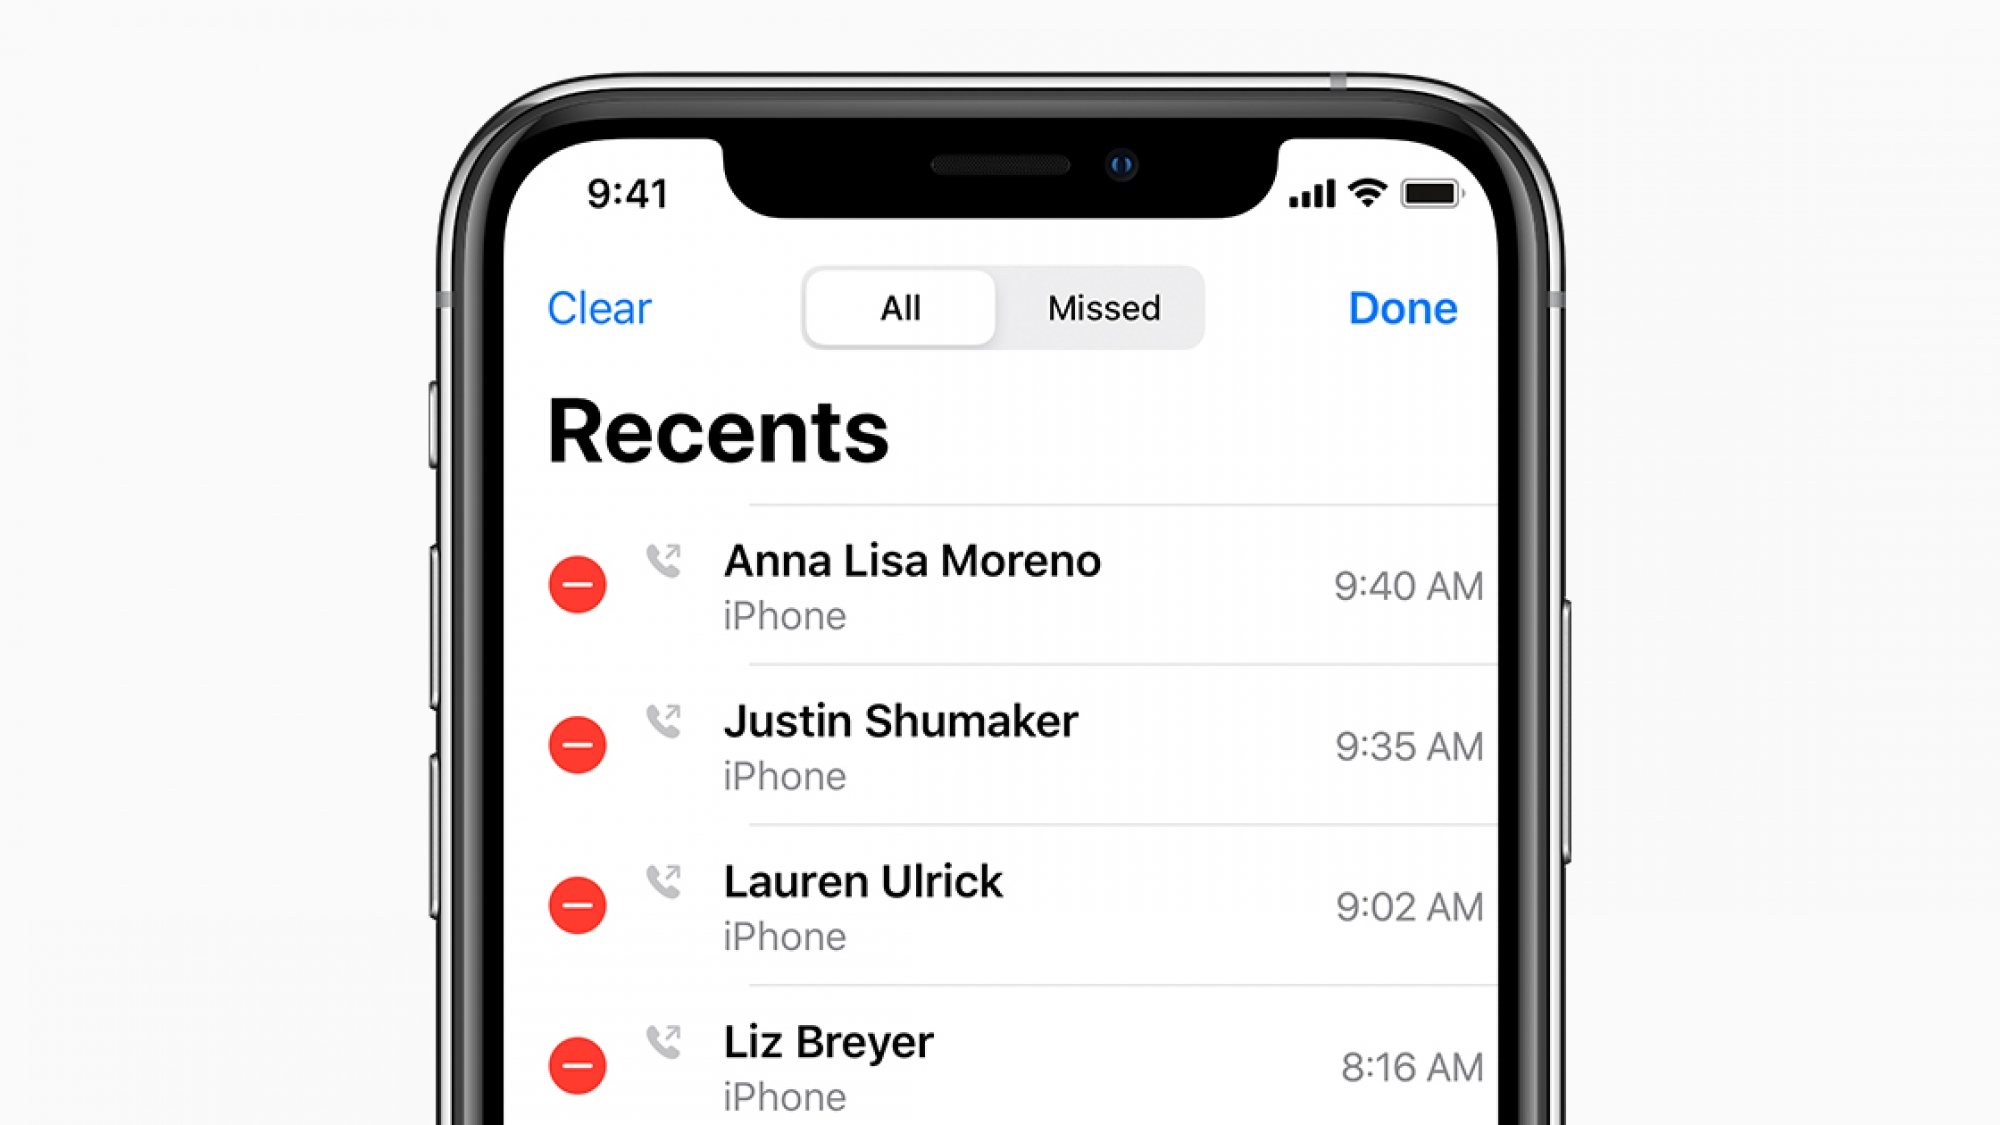 how to view call history on iphone from a month ago